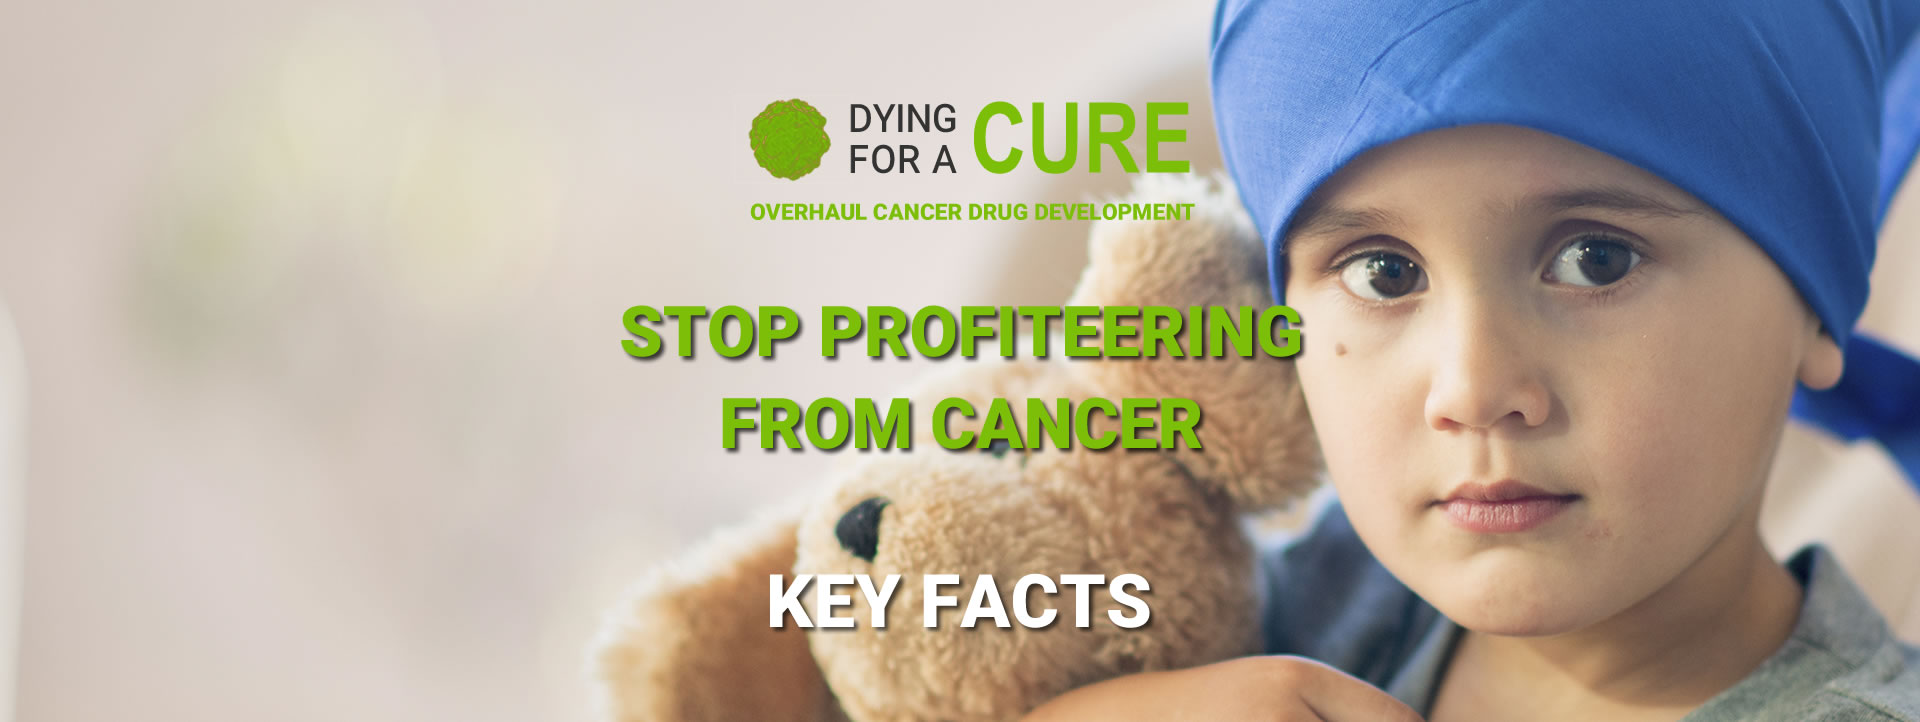 Key Facts - Dying for a Cure Campaign